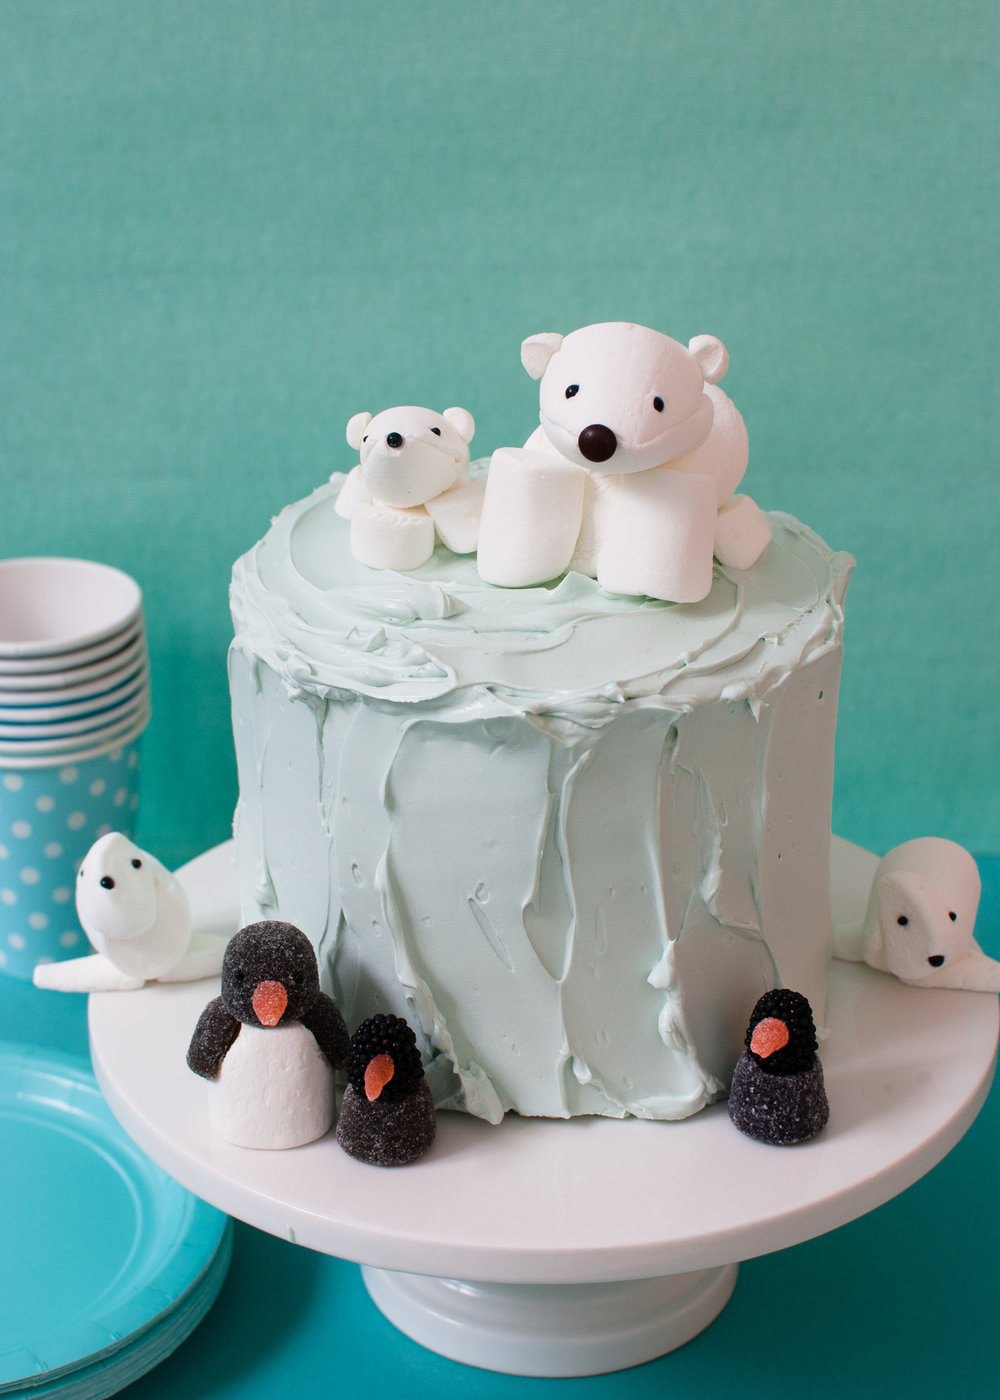 Cute Marshmallow Arctic Animals For A Winter Birthday Cake